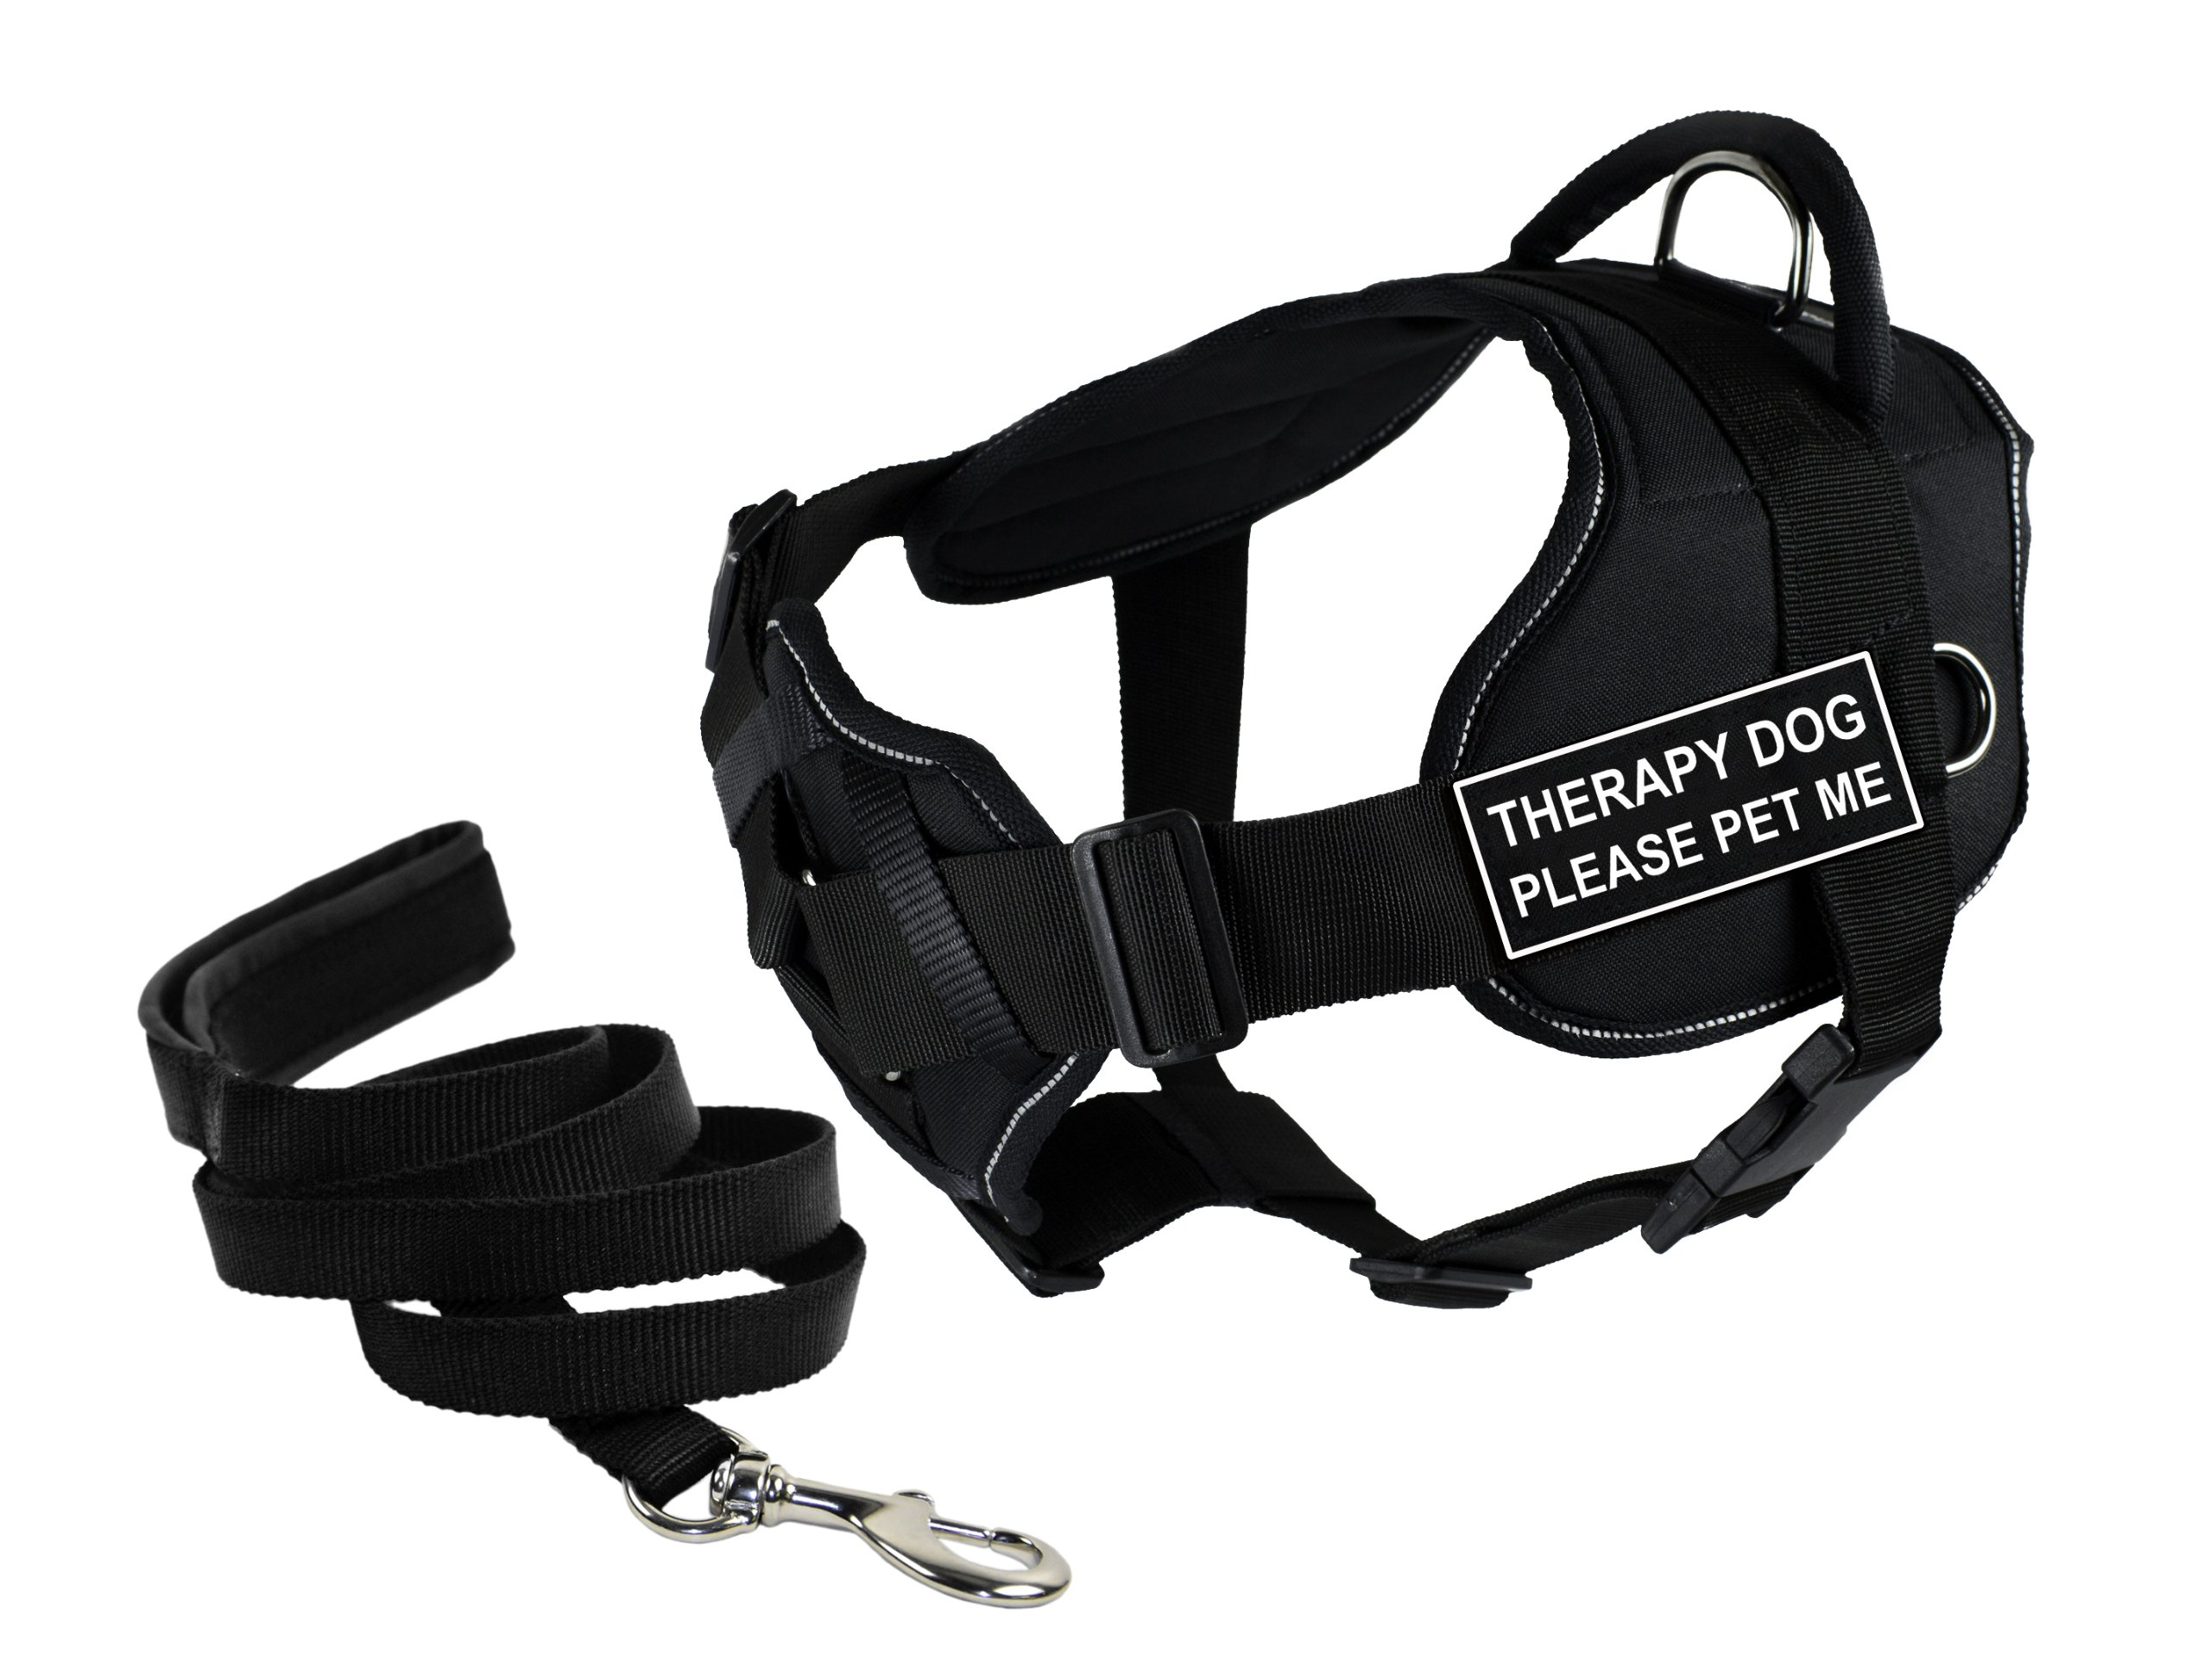 Dean & Tyler's DT Fun Chest Support ''THERAPY DOG PLEASE PET ME'' Harness with Reflective Trim, X-Large, and 6 ft Padded Puppy Leash.